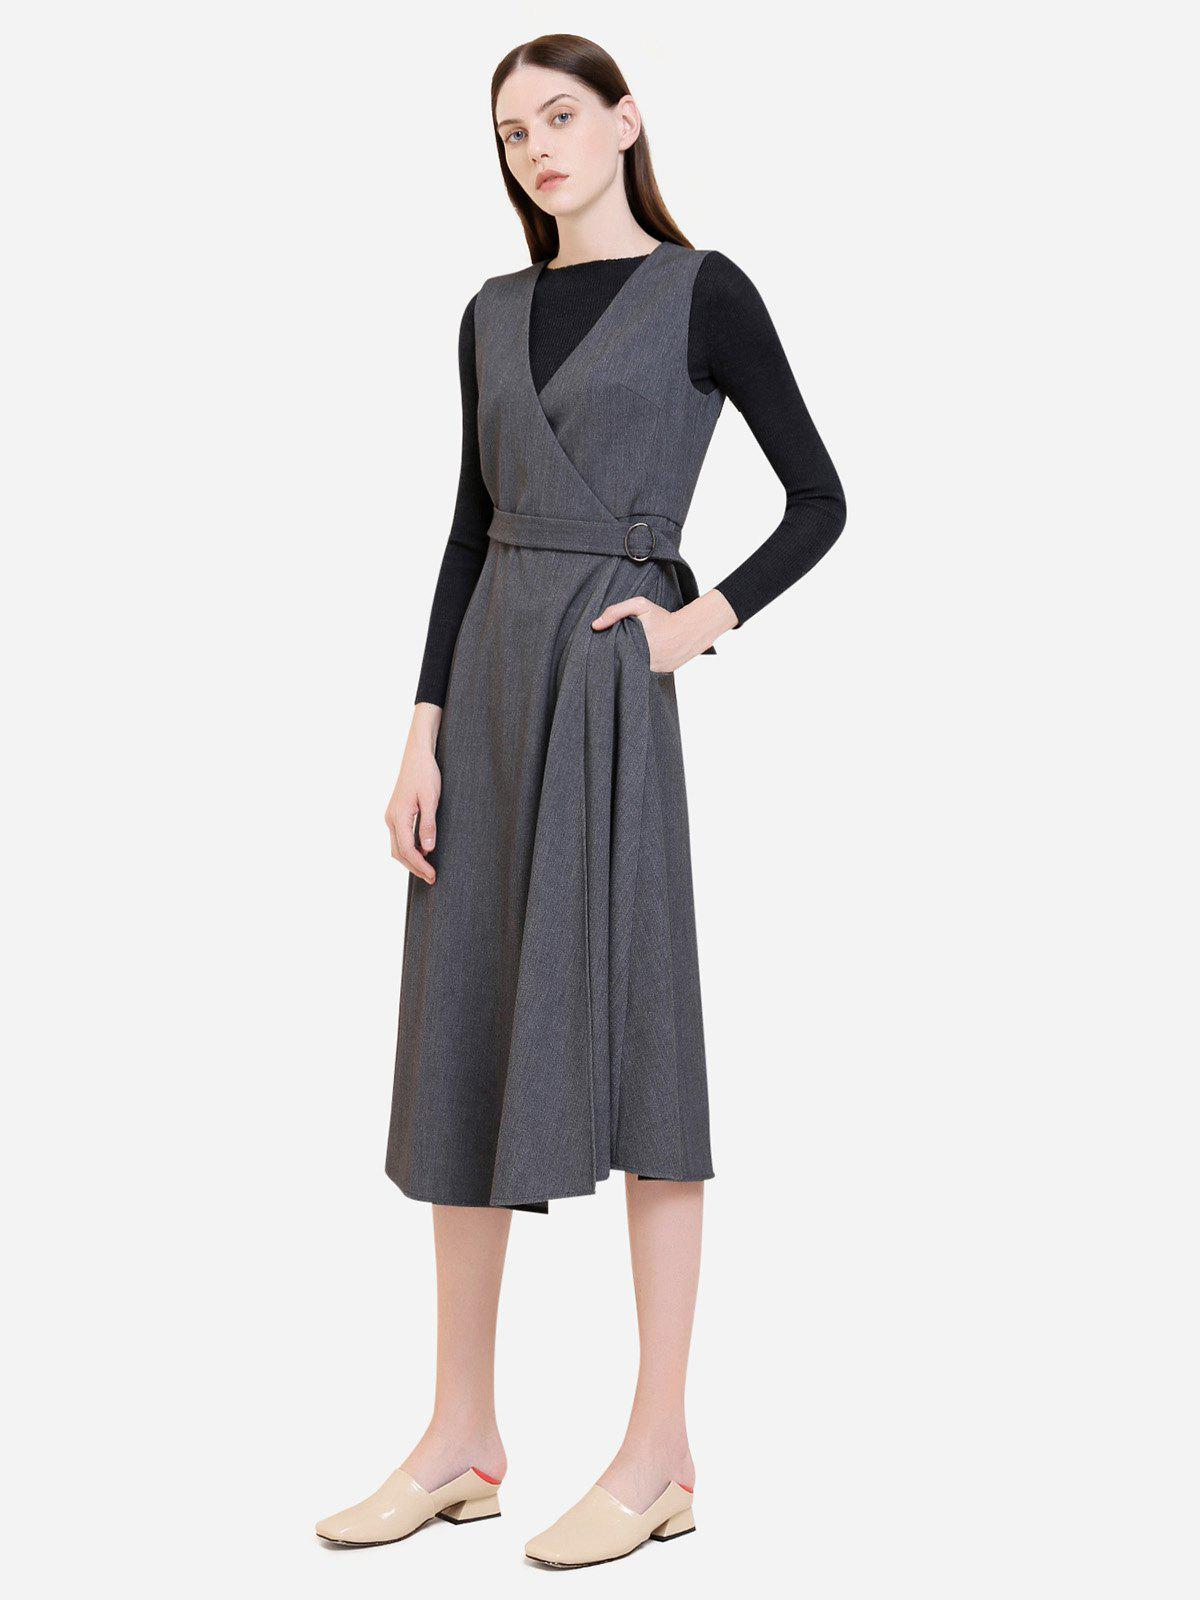 ZAN.STYLE Sleeveless Belted Dress Coat - GRAY L